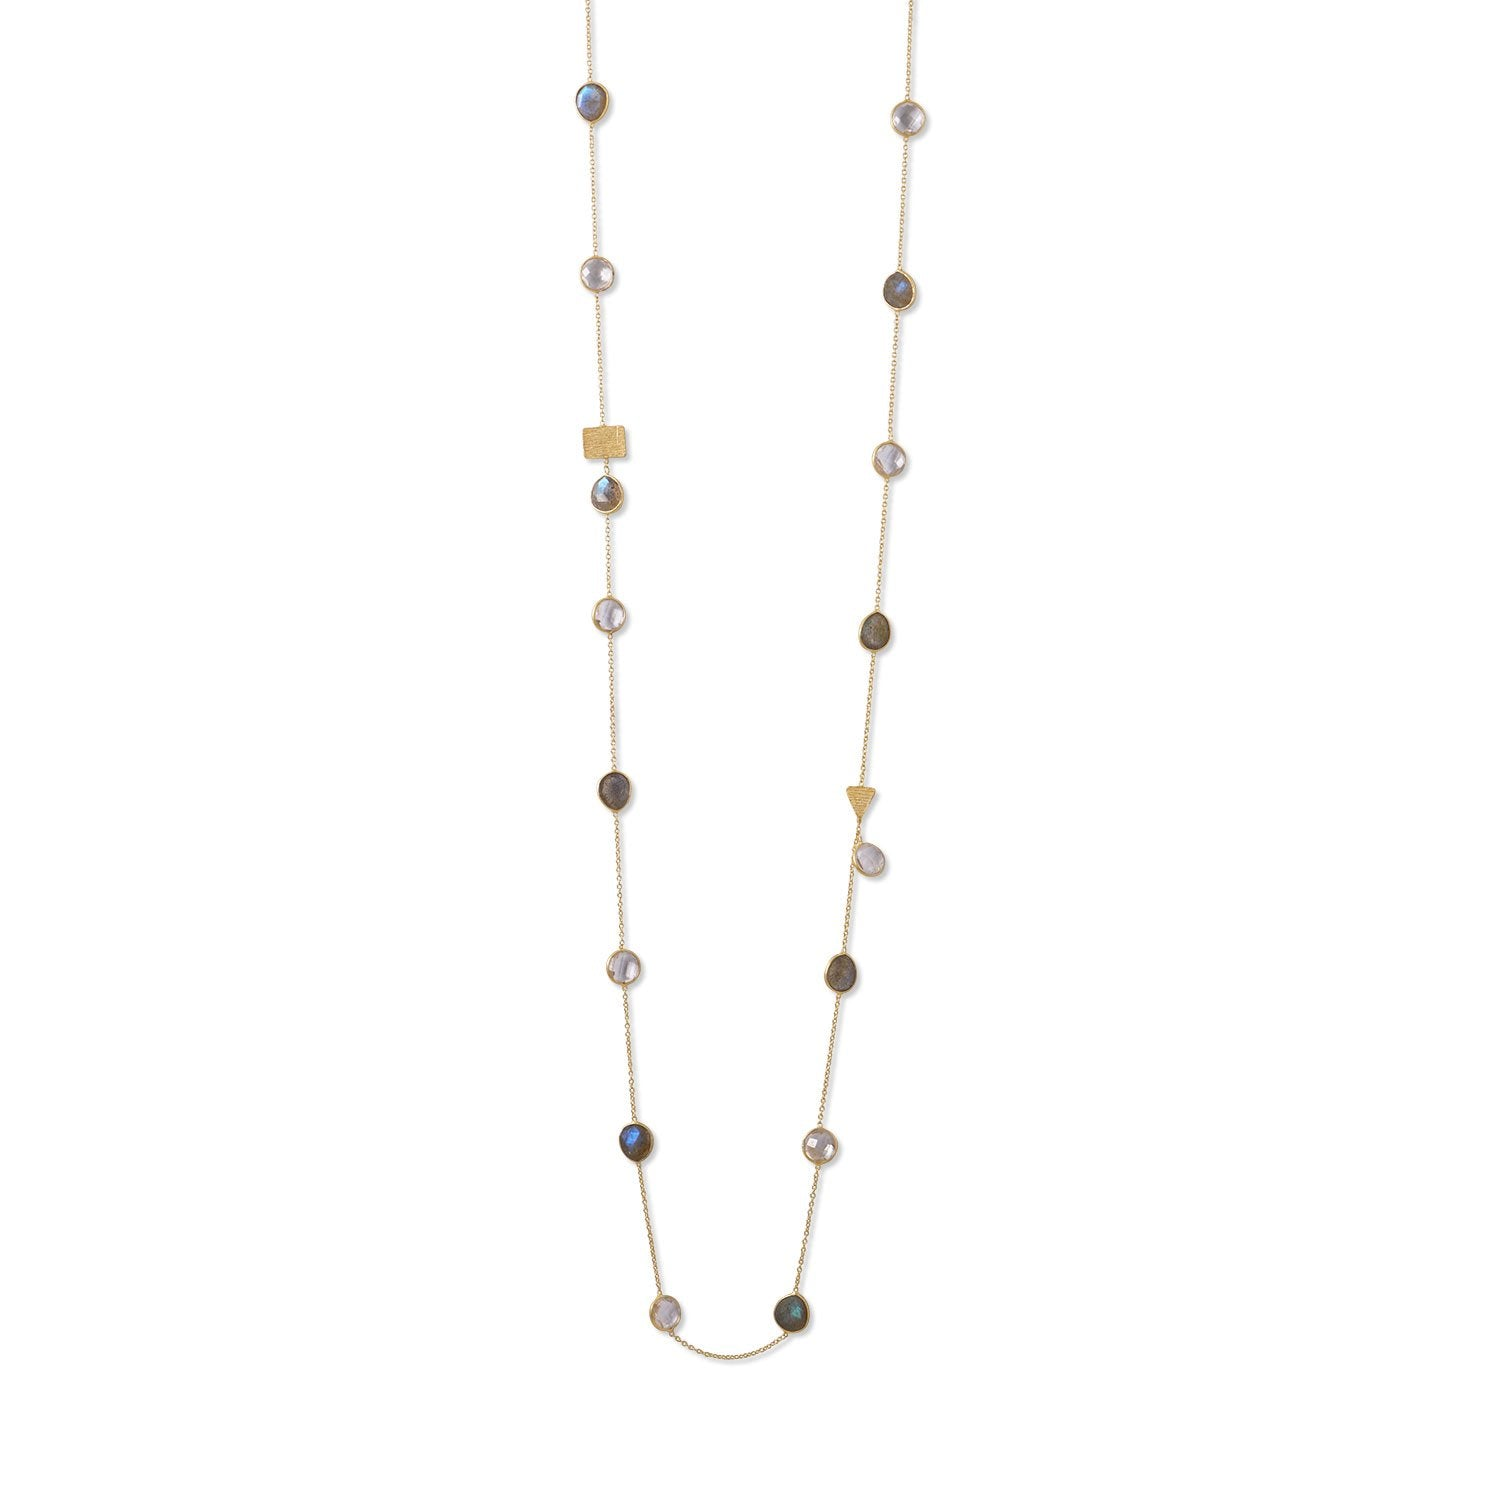 14 Karat Gold Plated Labradorite and Clear Quartz Endless Necklace - Rocky Mt. Discount Outlet